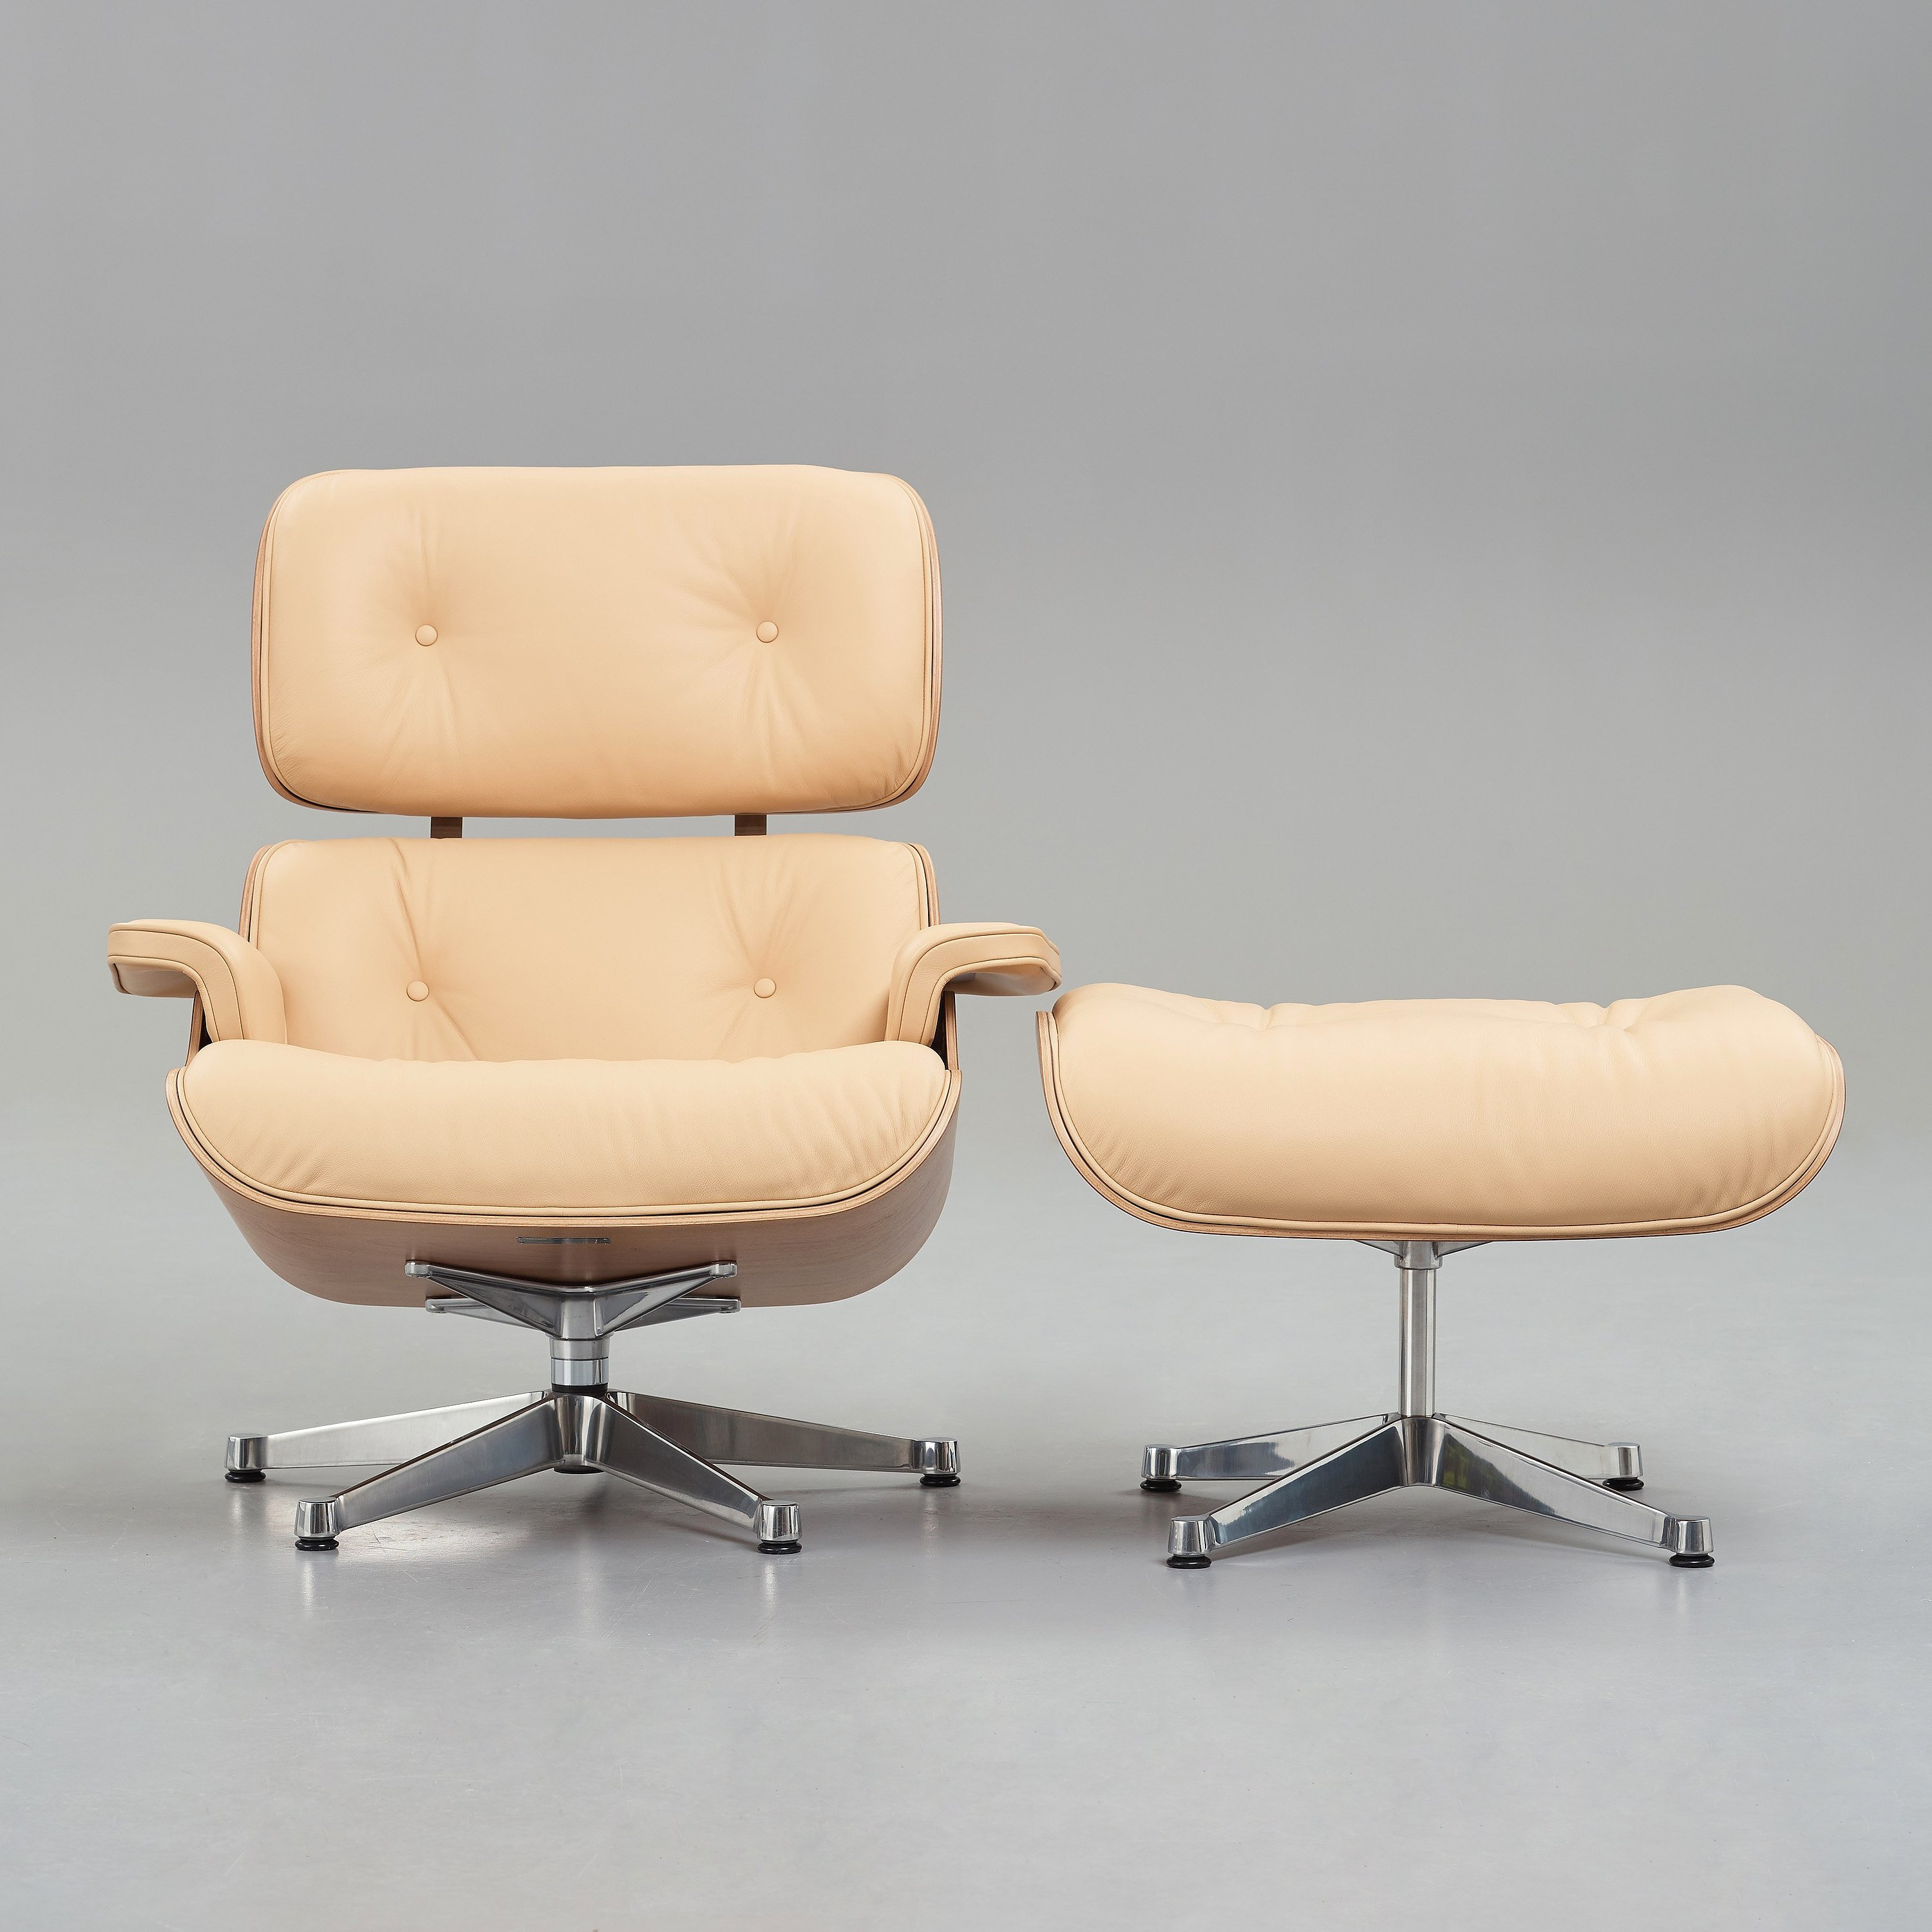 Wondrous Charles Ray Eames Lounge Chair With Ottoman For Vitra Caraccident5 Cool Chair Designs And Ideas Caraccident5Info